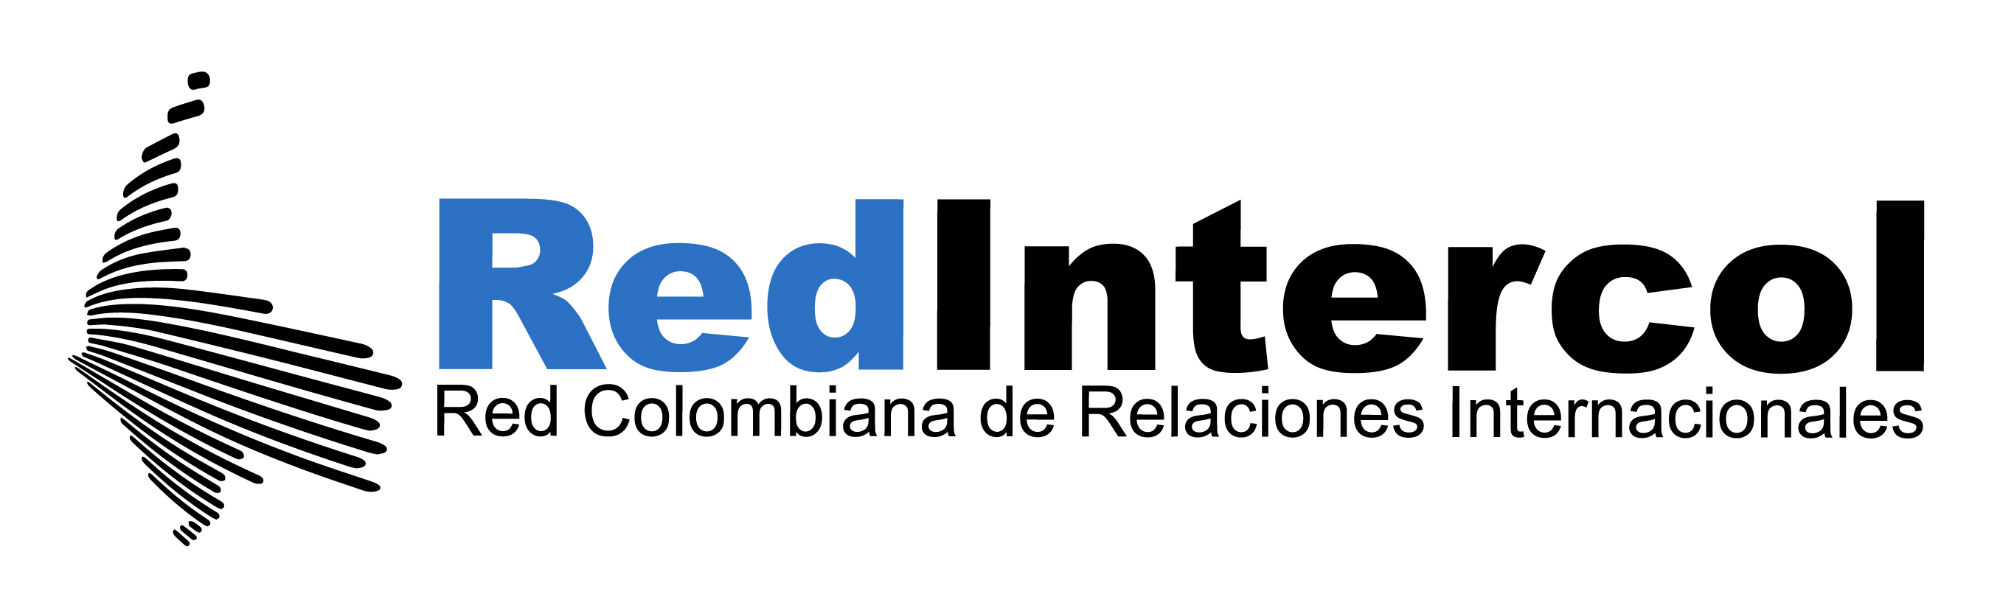 RED INTERCOL LOGO.jpg